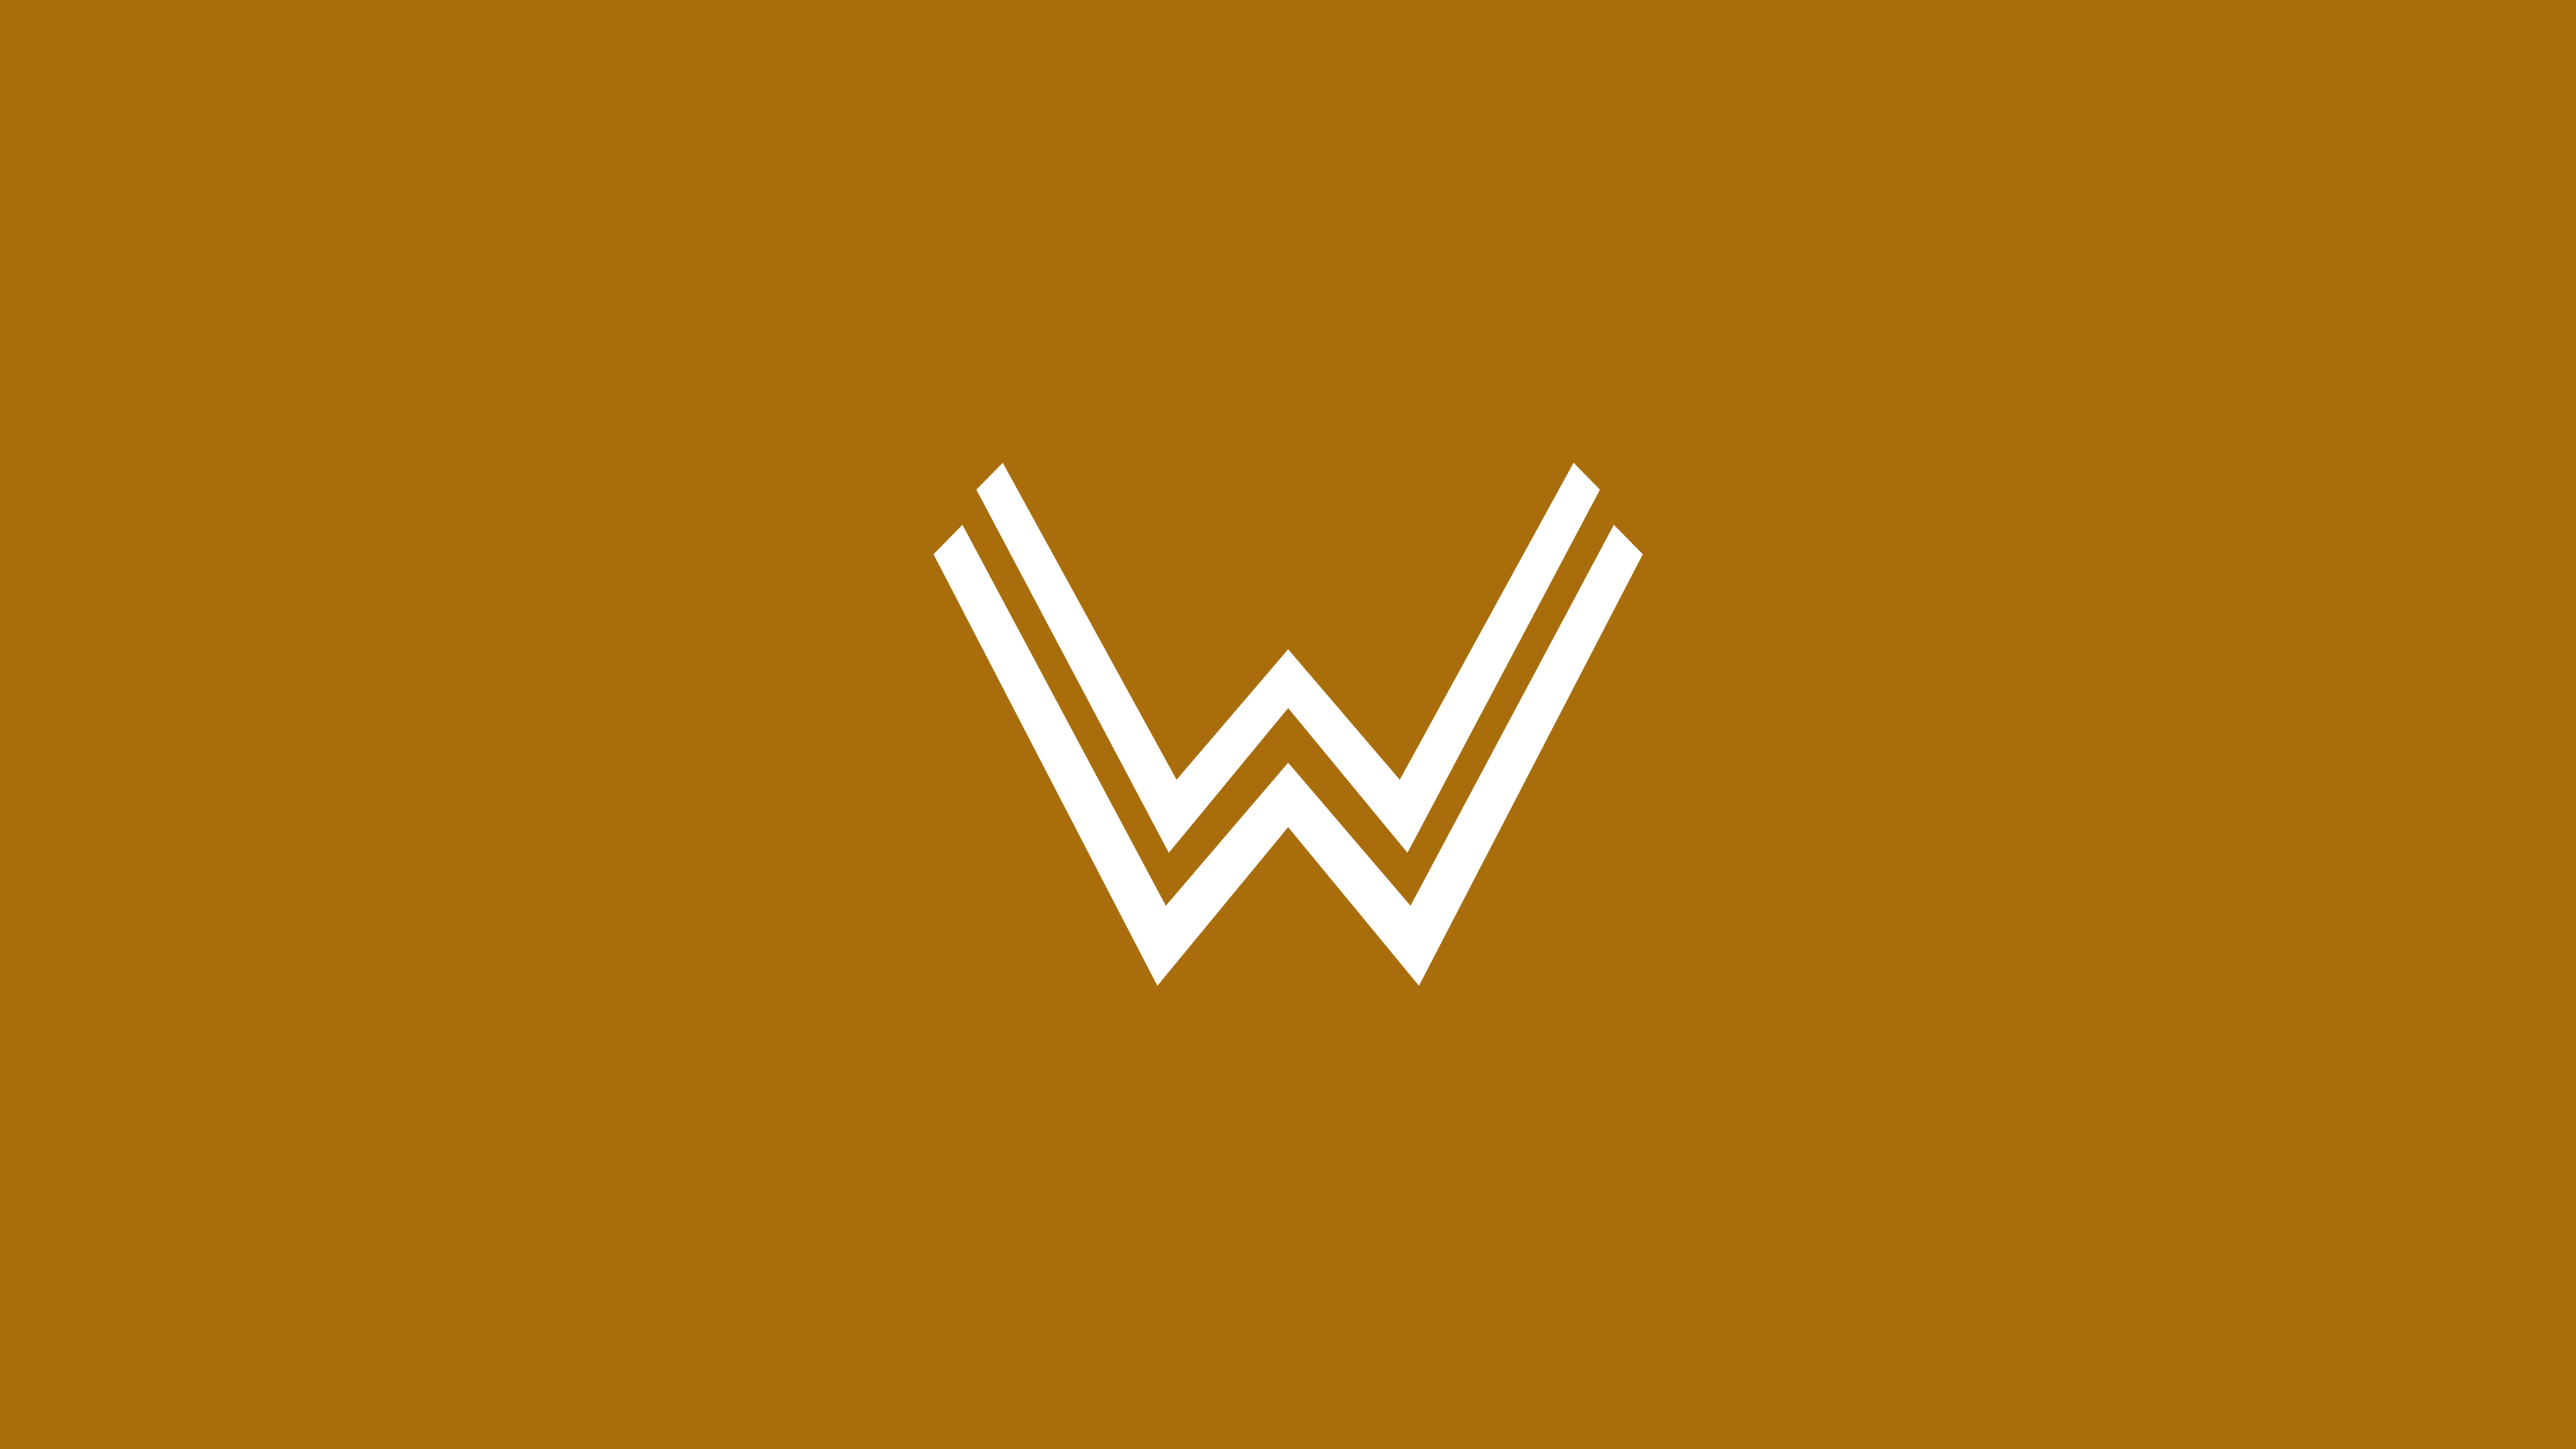 Wallpaper 4k Wonder Woman Minimalism Logo 4k 5k Wallpapers Logo